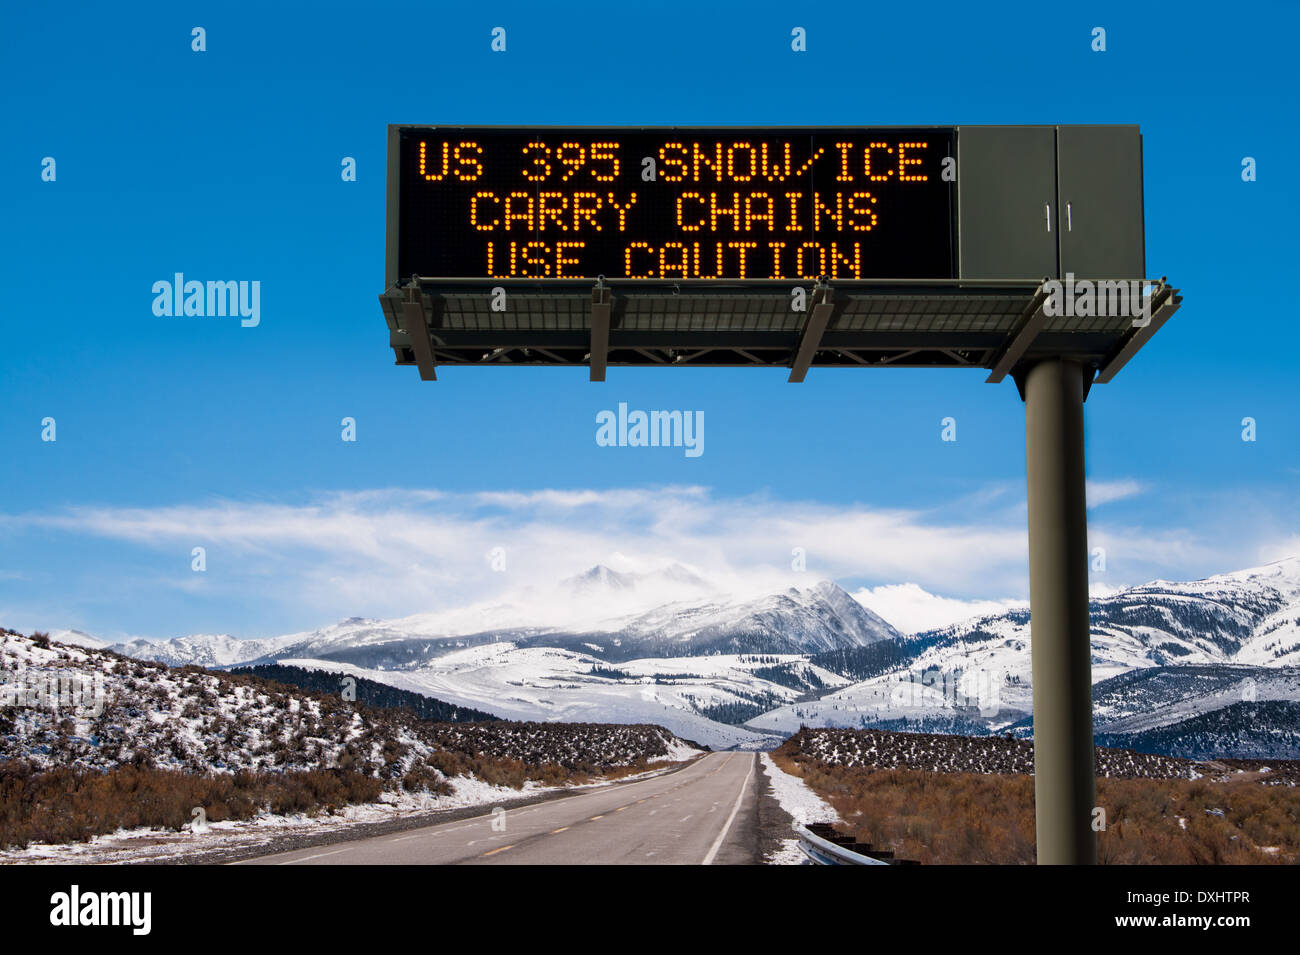 Road Conditions Sign - Stock Image